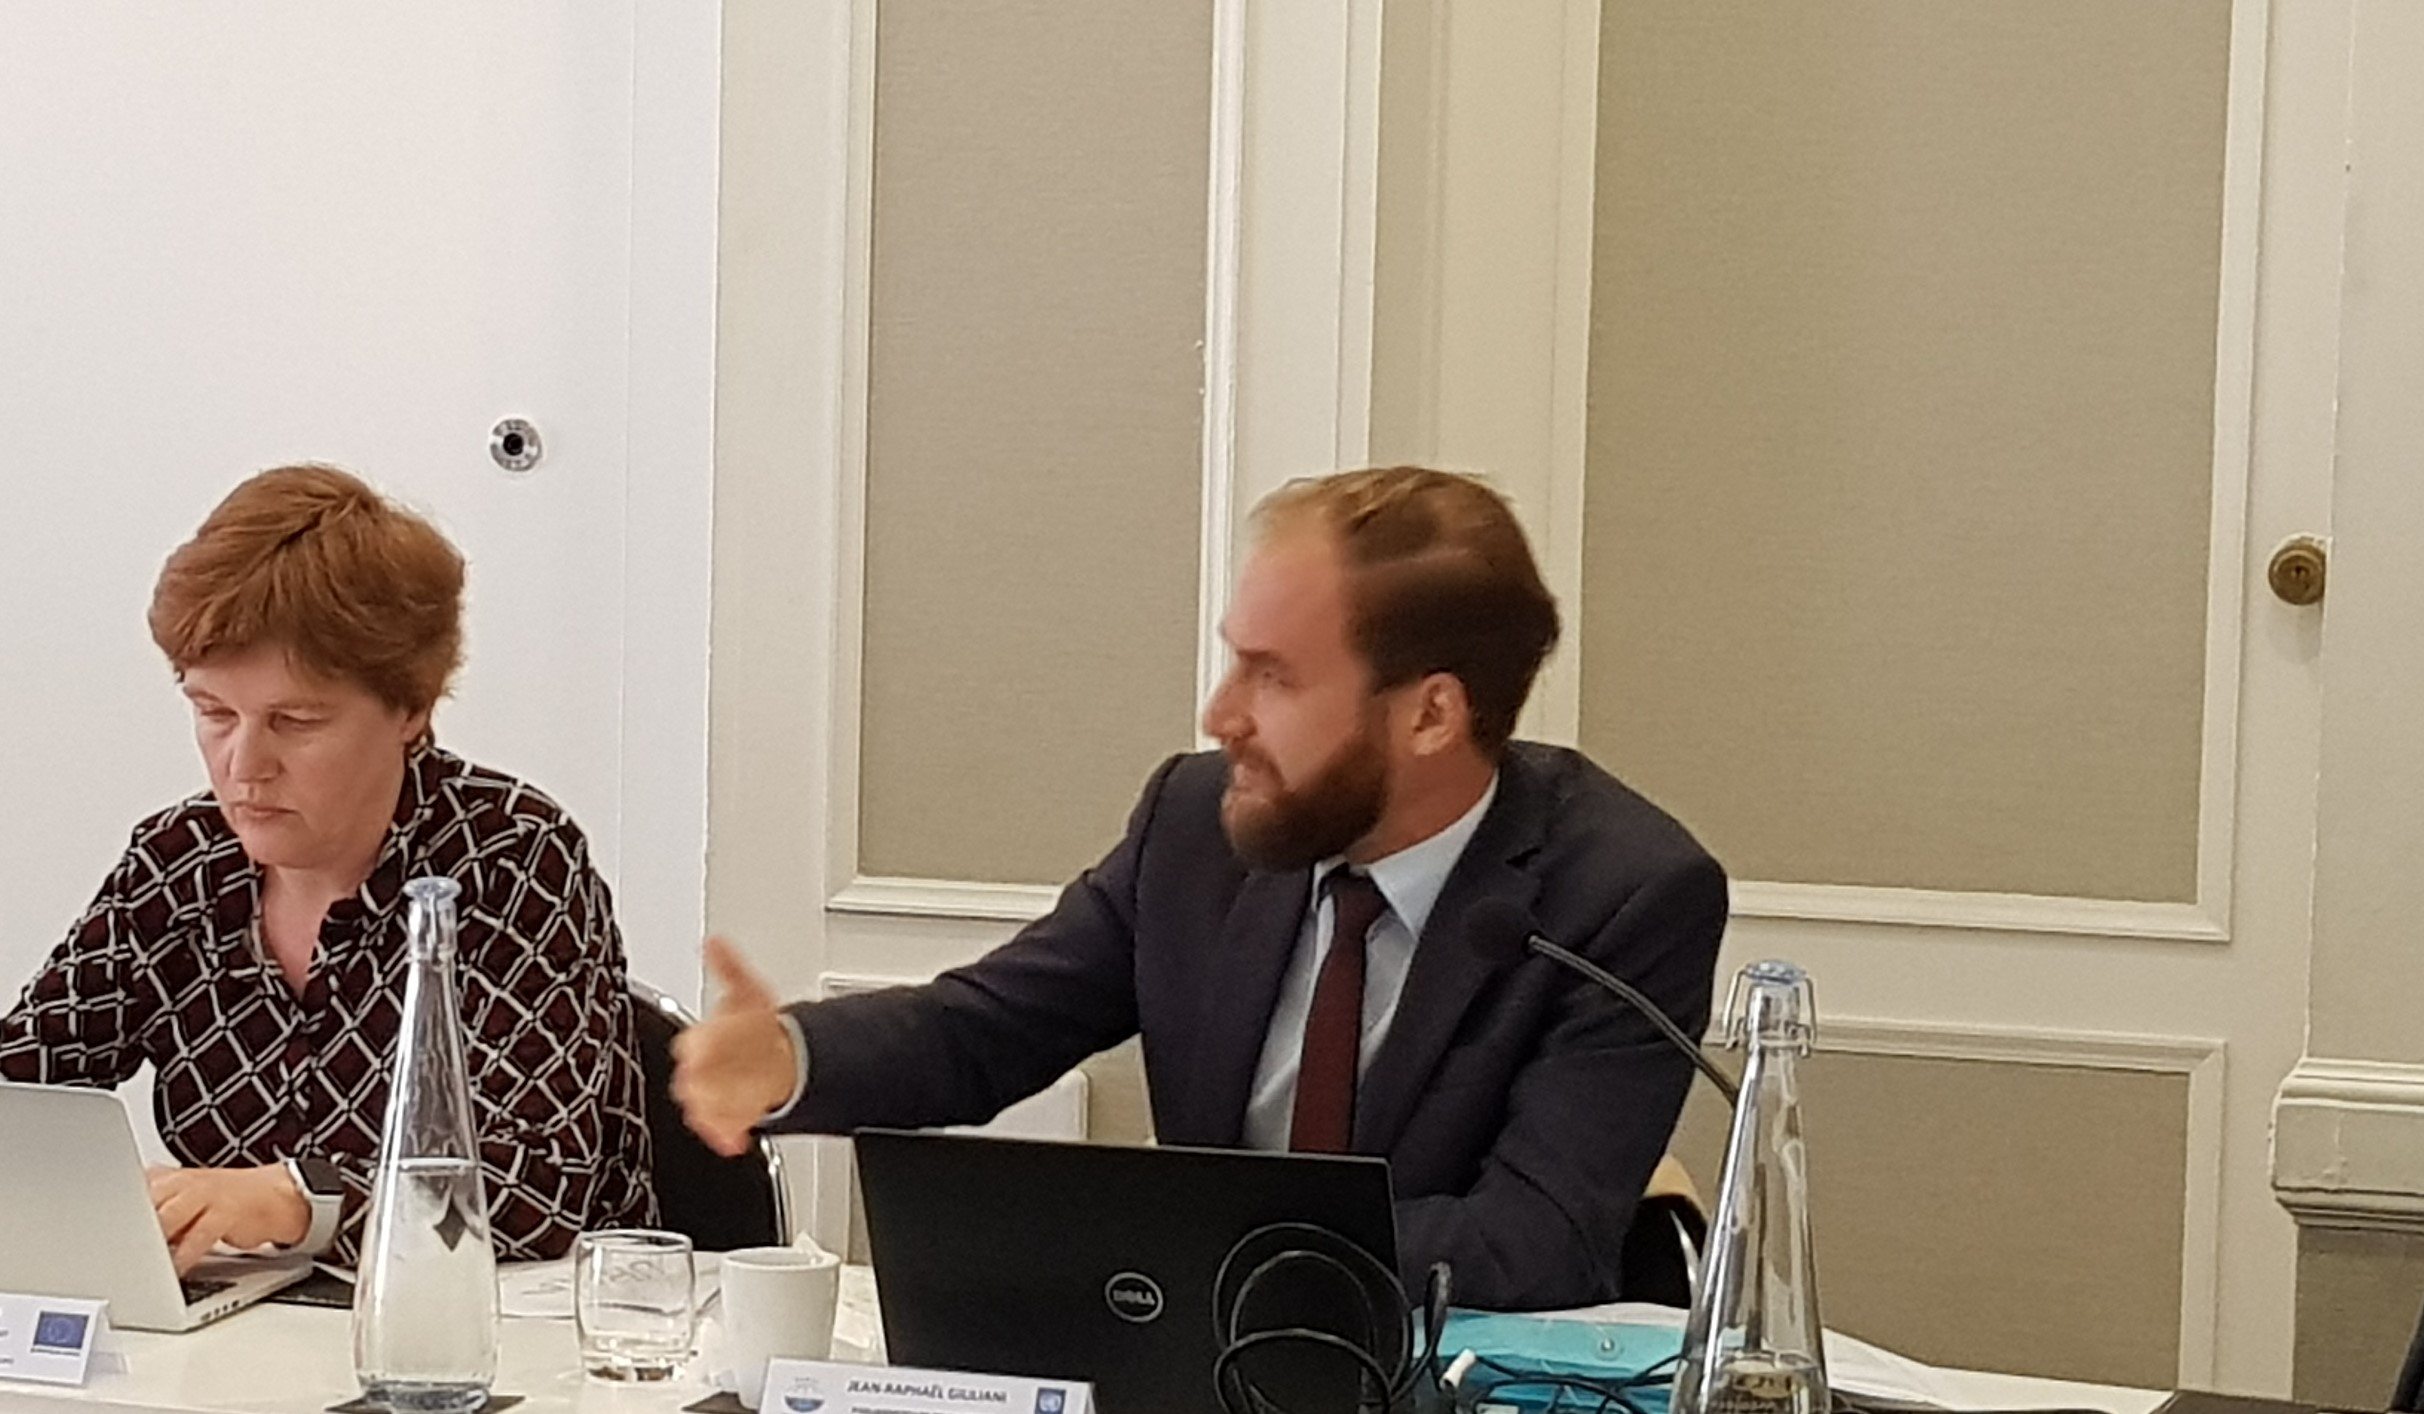 EU representative Marga Peeters and UNDP representative Jean-Raphael Guiliani at PASAI's Governing Board Meeting in Auckland, NZ, 28 Feb – 1 March 2019